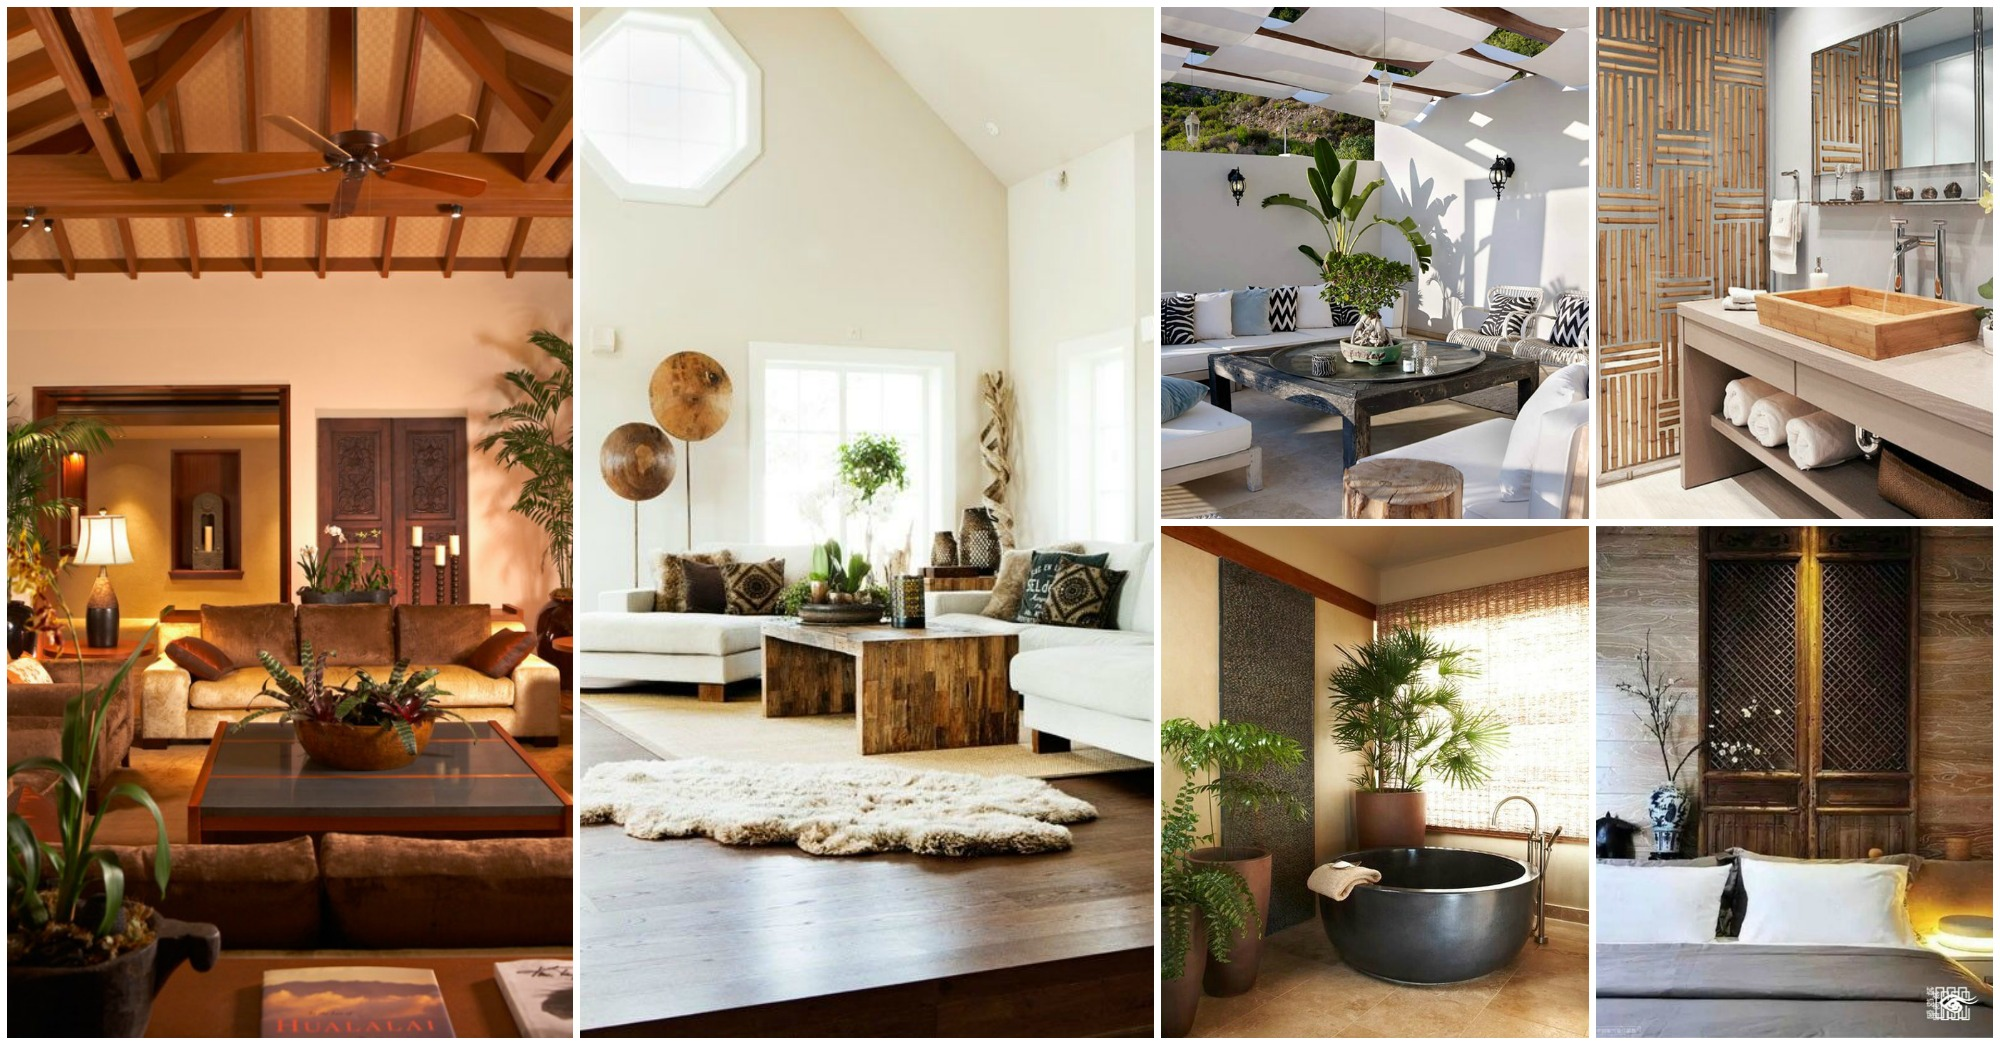 Best Modern Asian Home Decor Ideas That Will Amaze You This Month